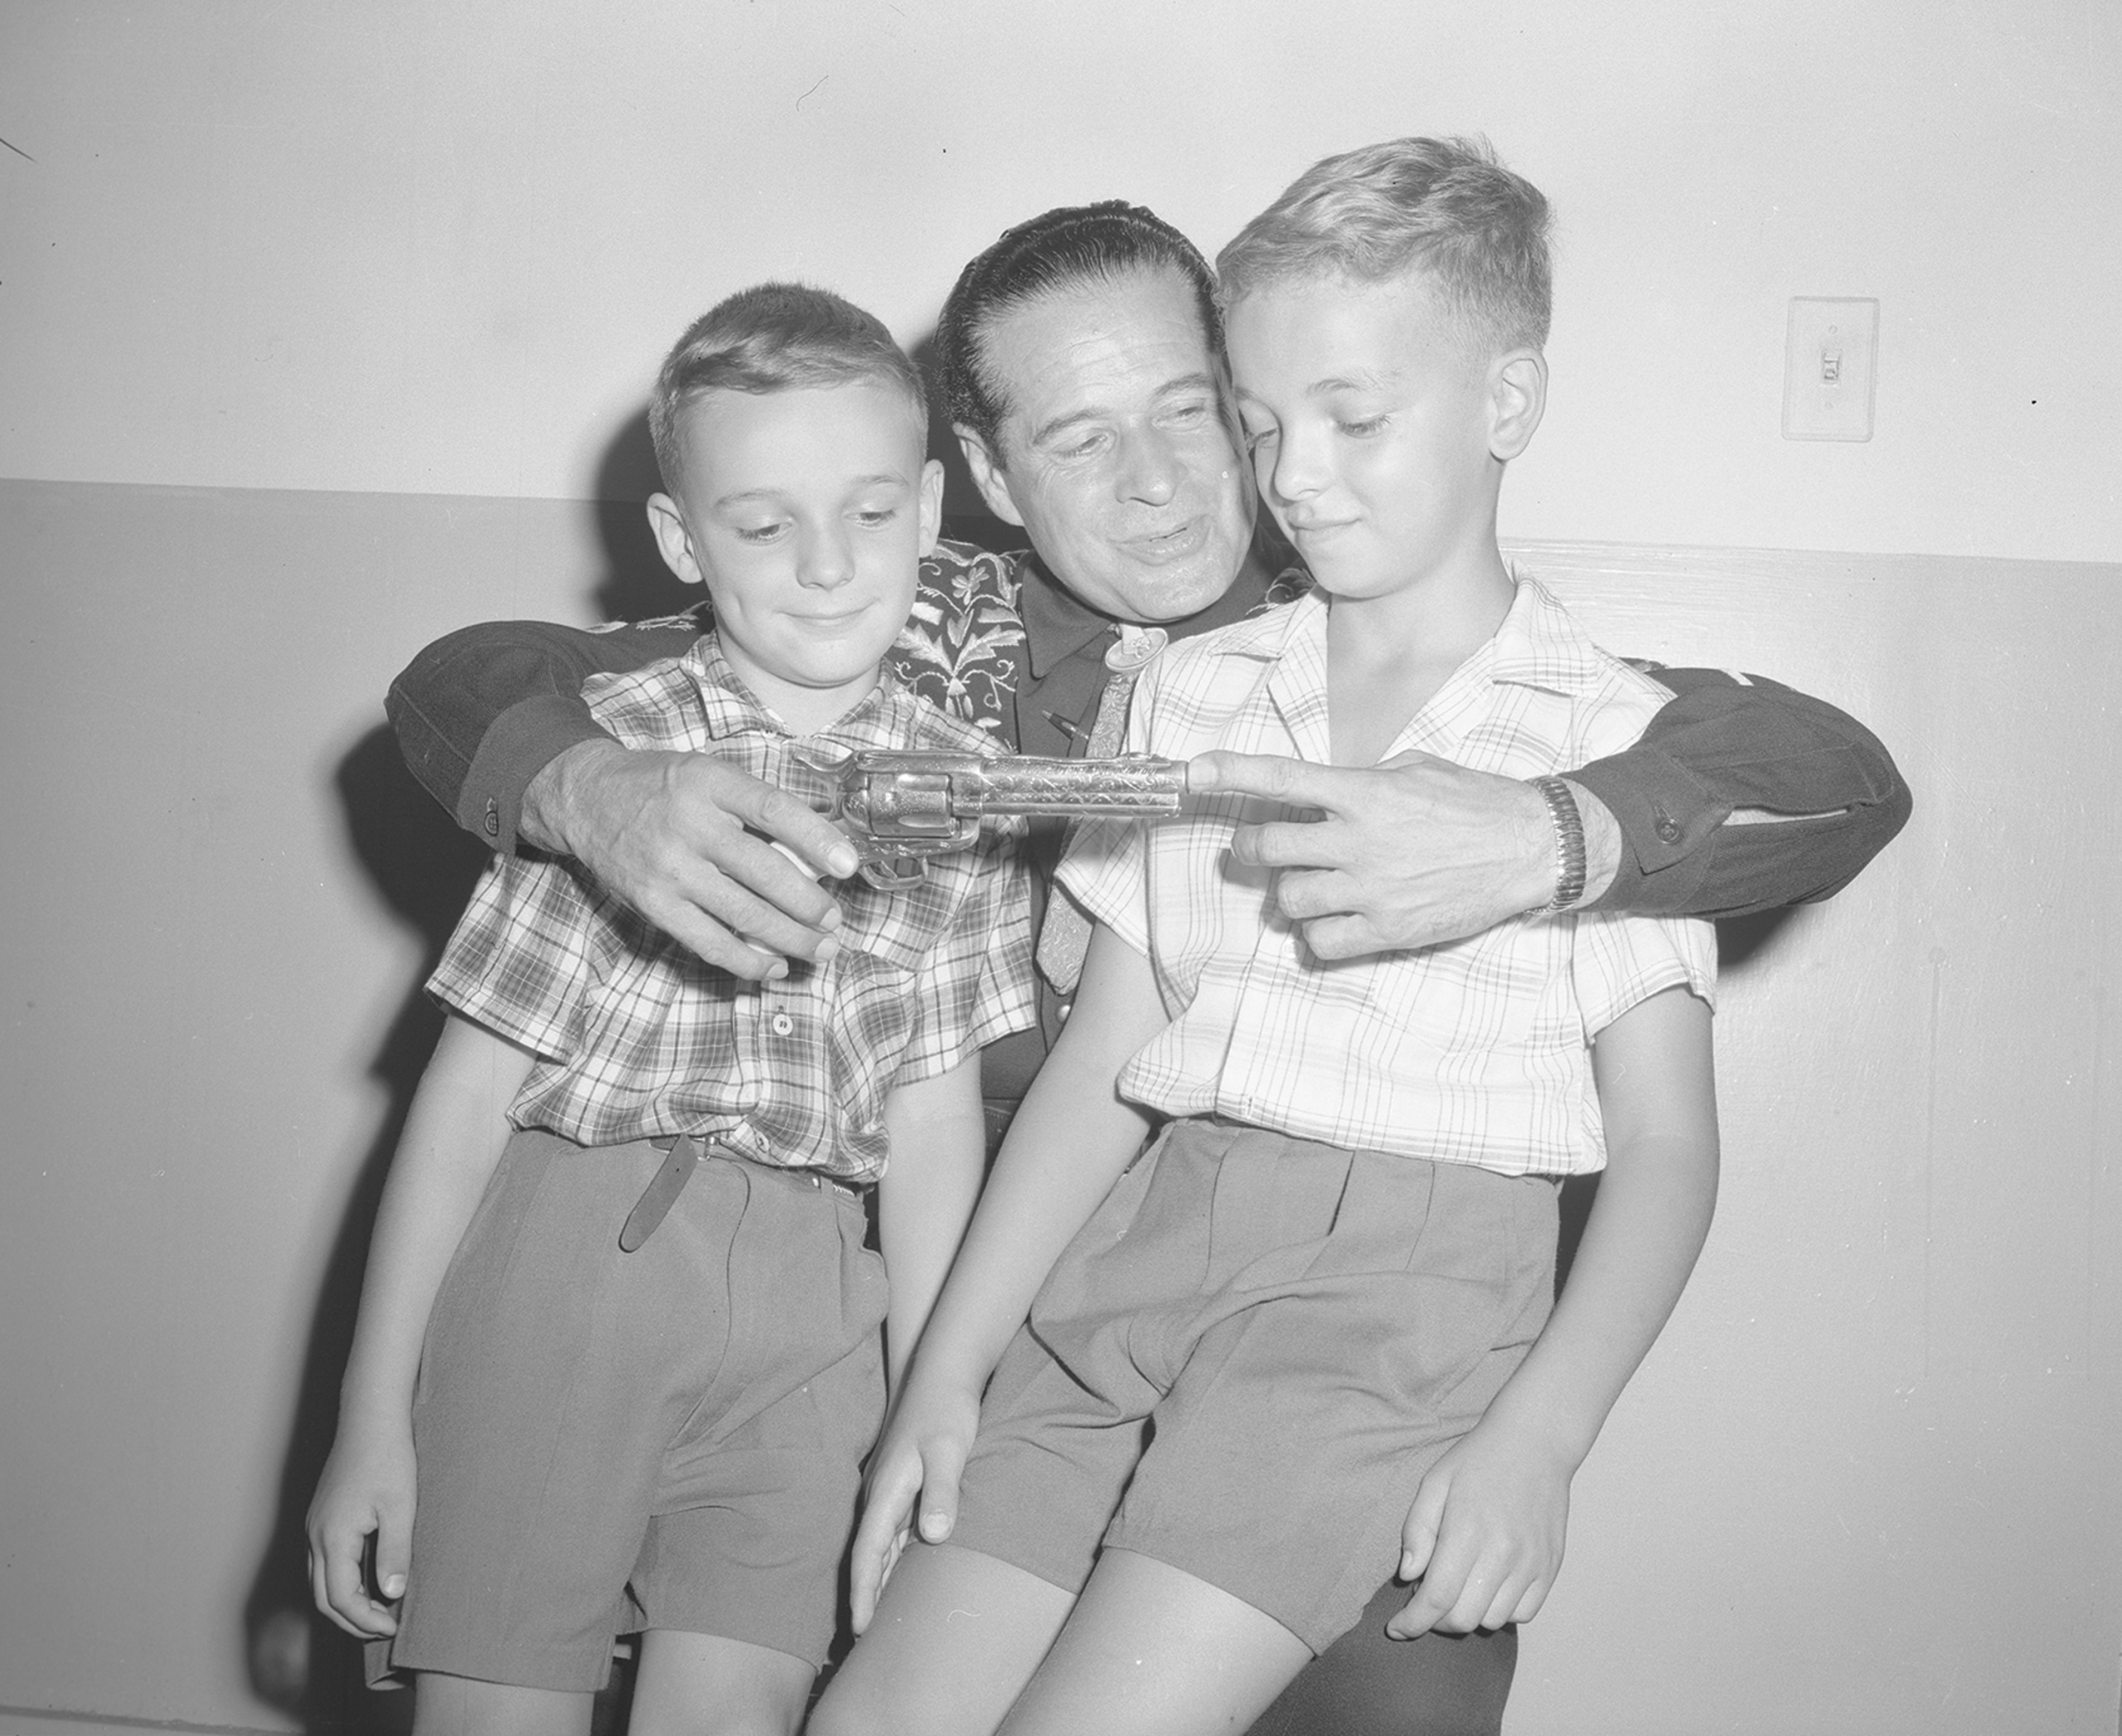 Cisco Kid with Fans, 1959. Canadian National Exhibition Archives, MG5-F264-I3. Courtesy of the CNEA